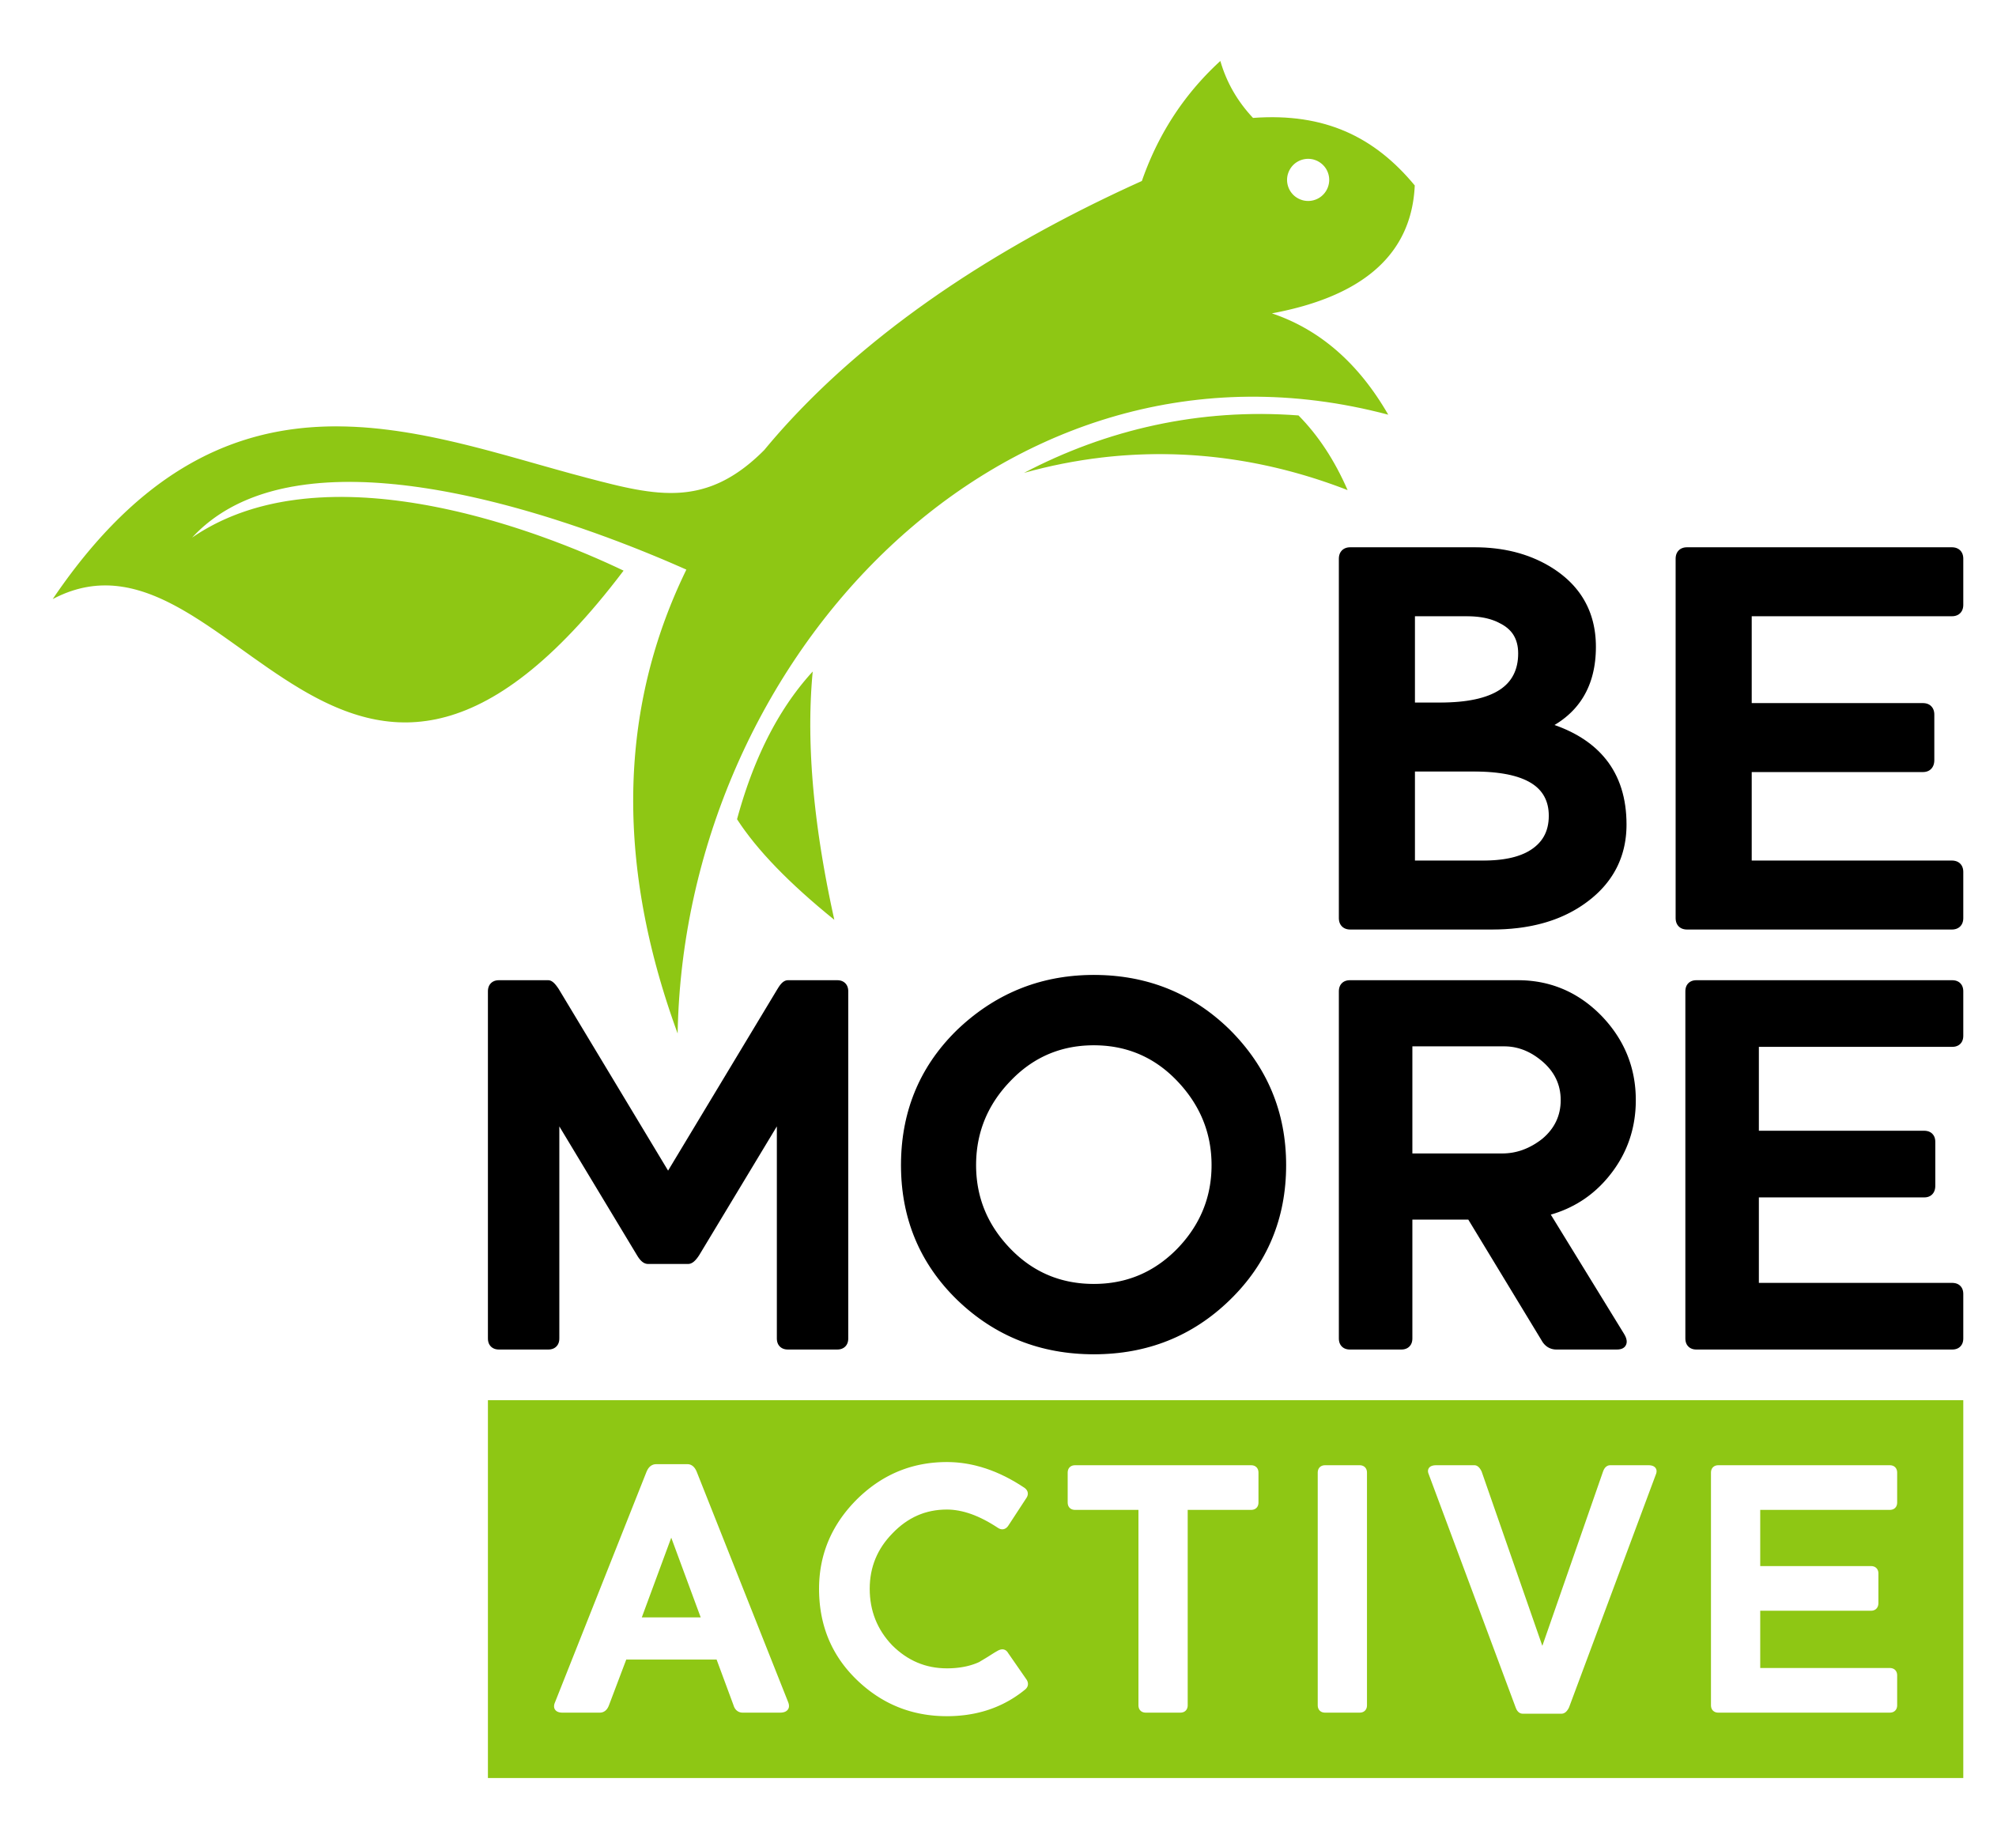 Create a logo for an exciting new approach to fitness for Be More Active